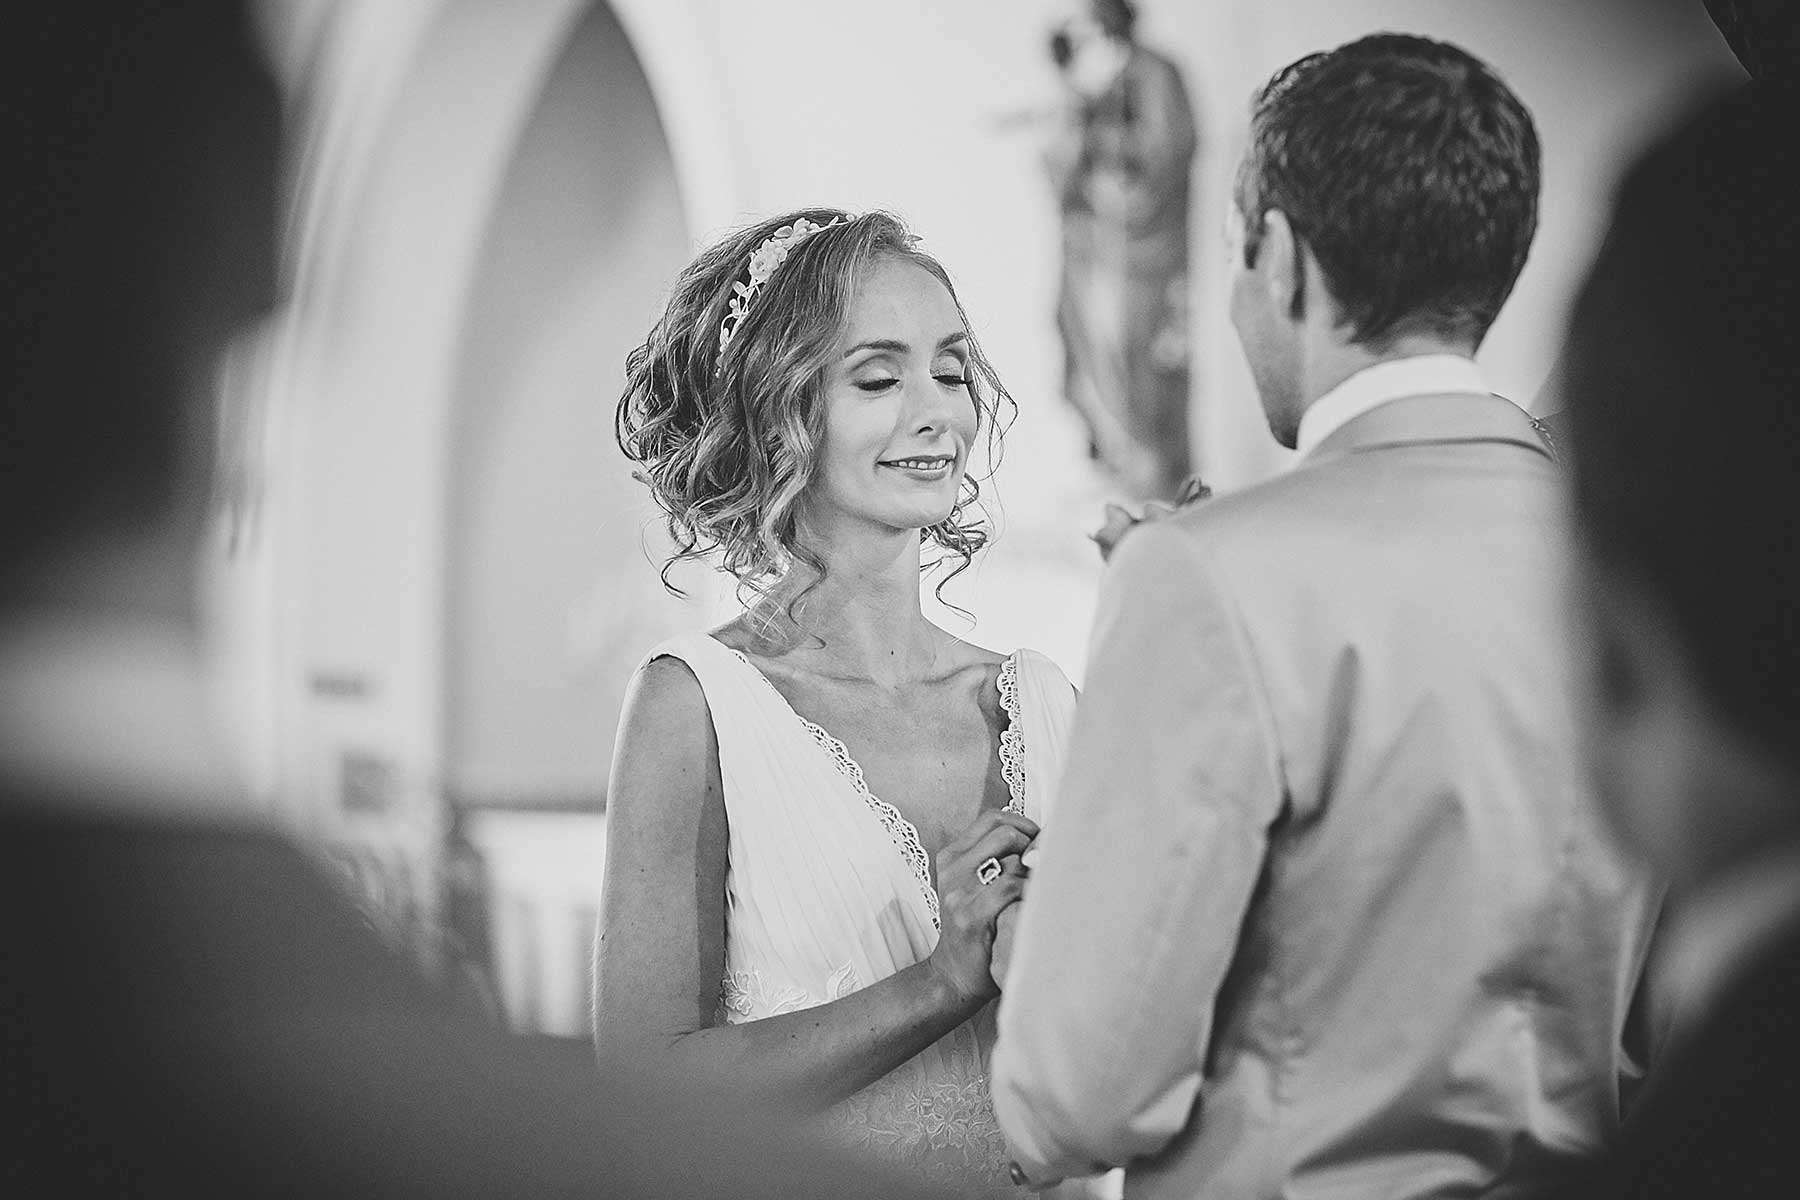 0171 - Meabh and Pauric | Wedding at Lisnavagh House co.Carlow